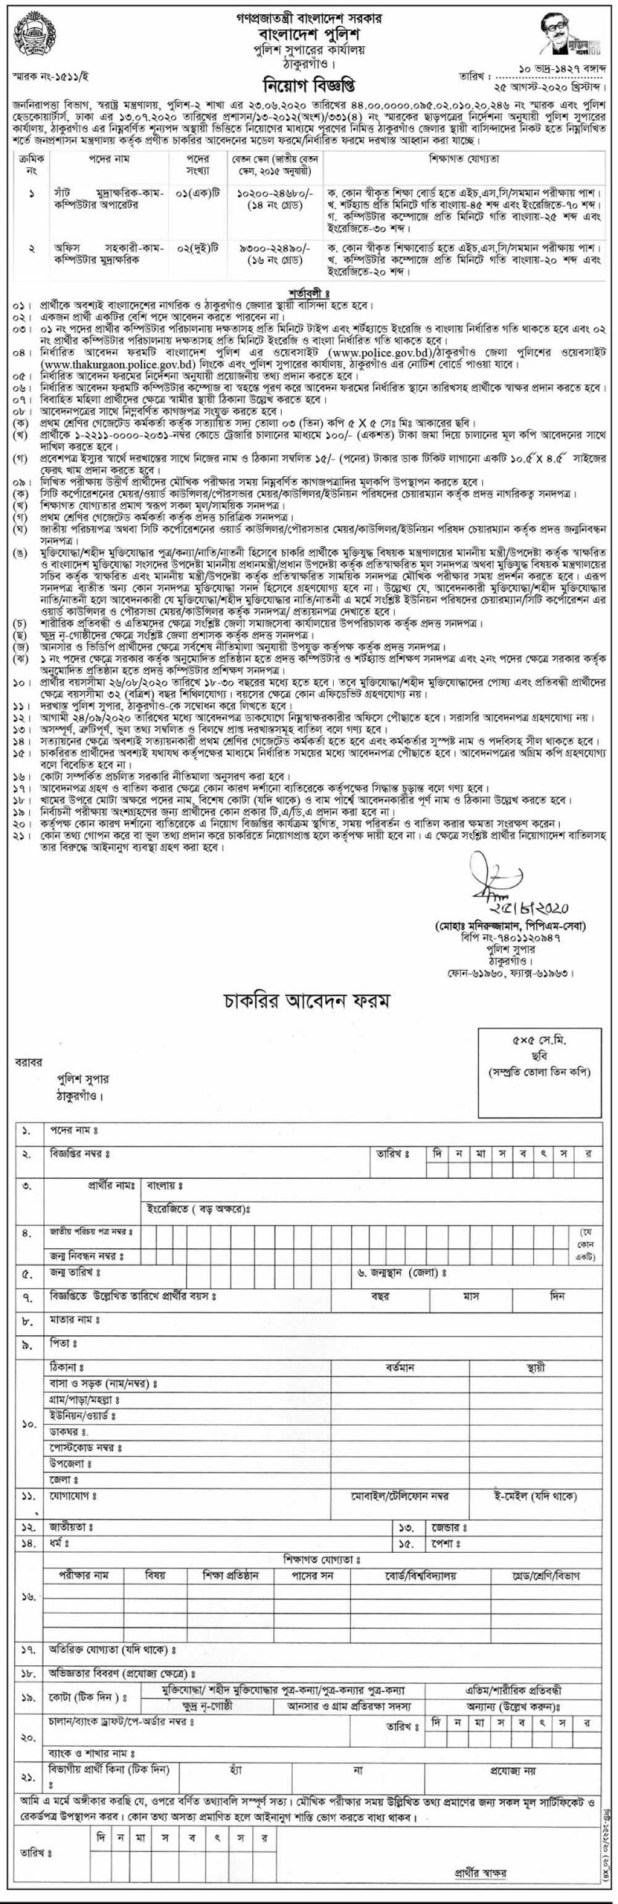 Thakurgaon police super office job circular 2020